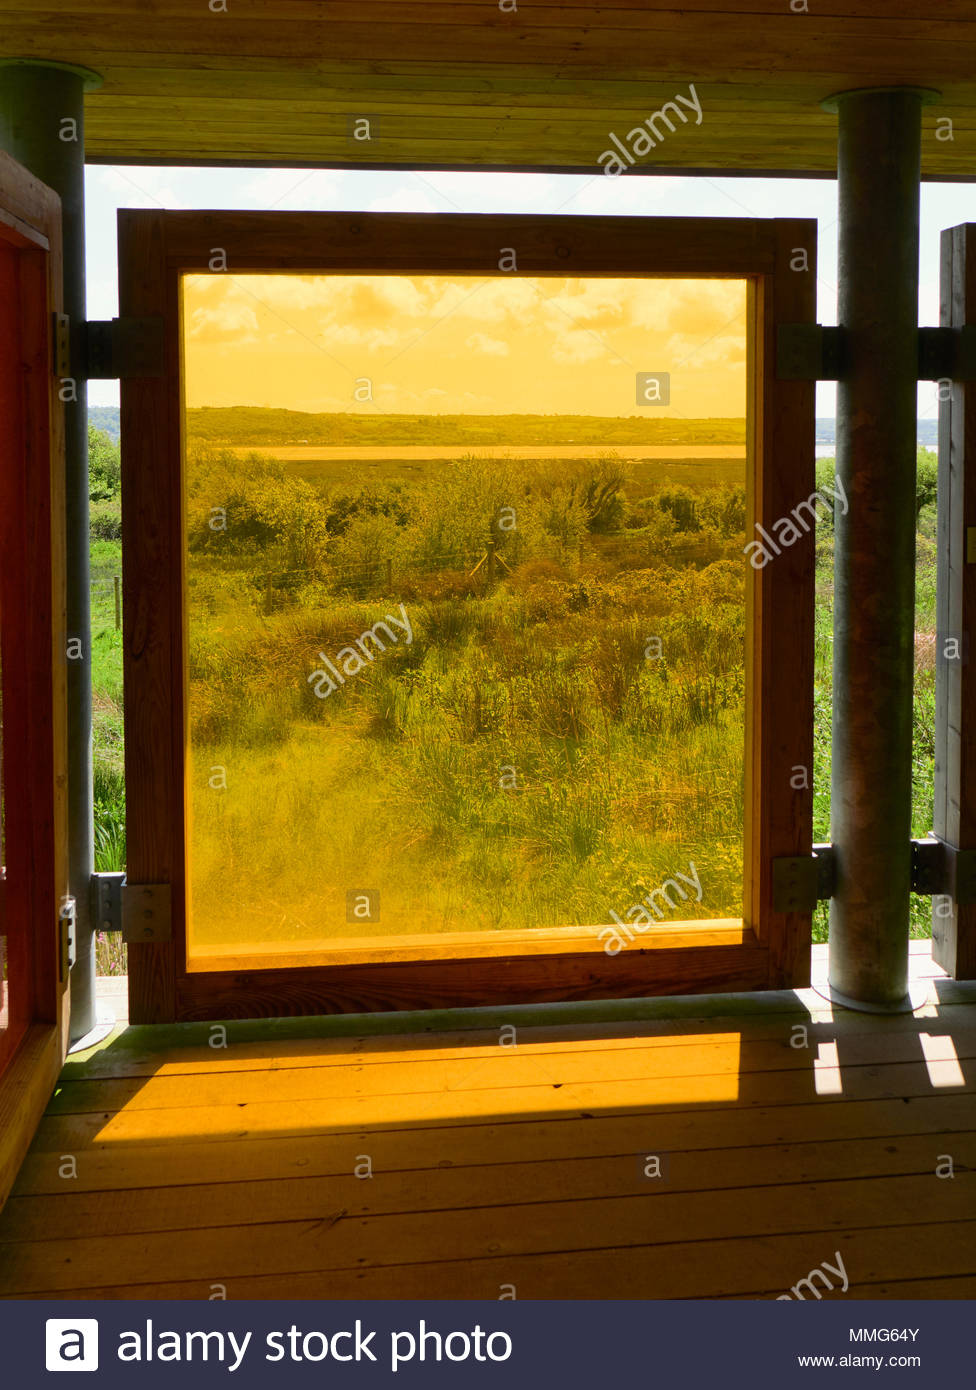 Colored Glass Panels Stock Photos & Colored Glass Panels Stock ...